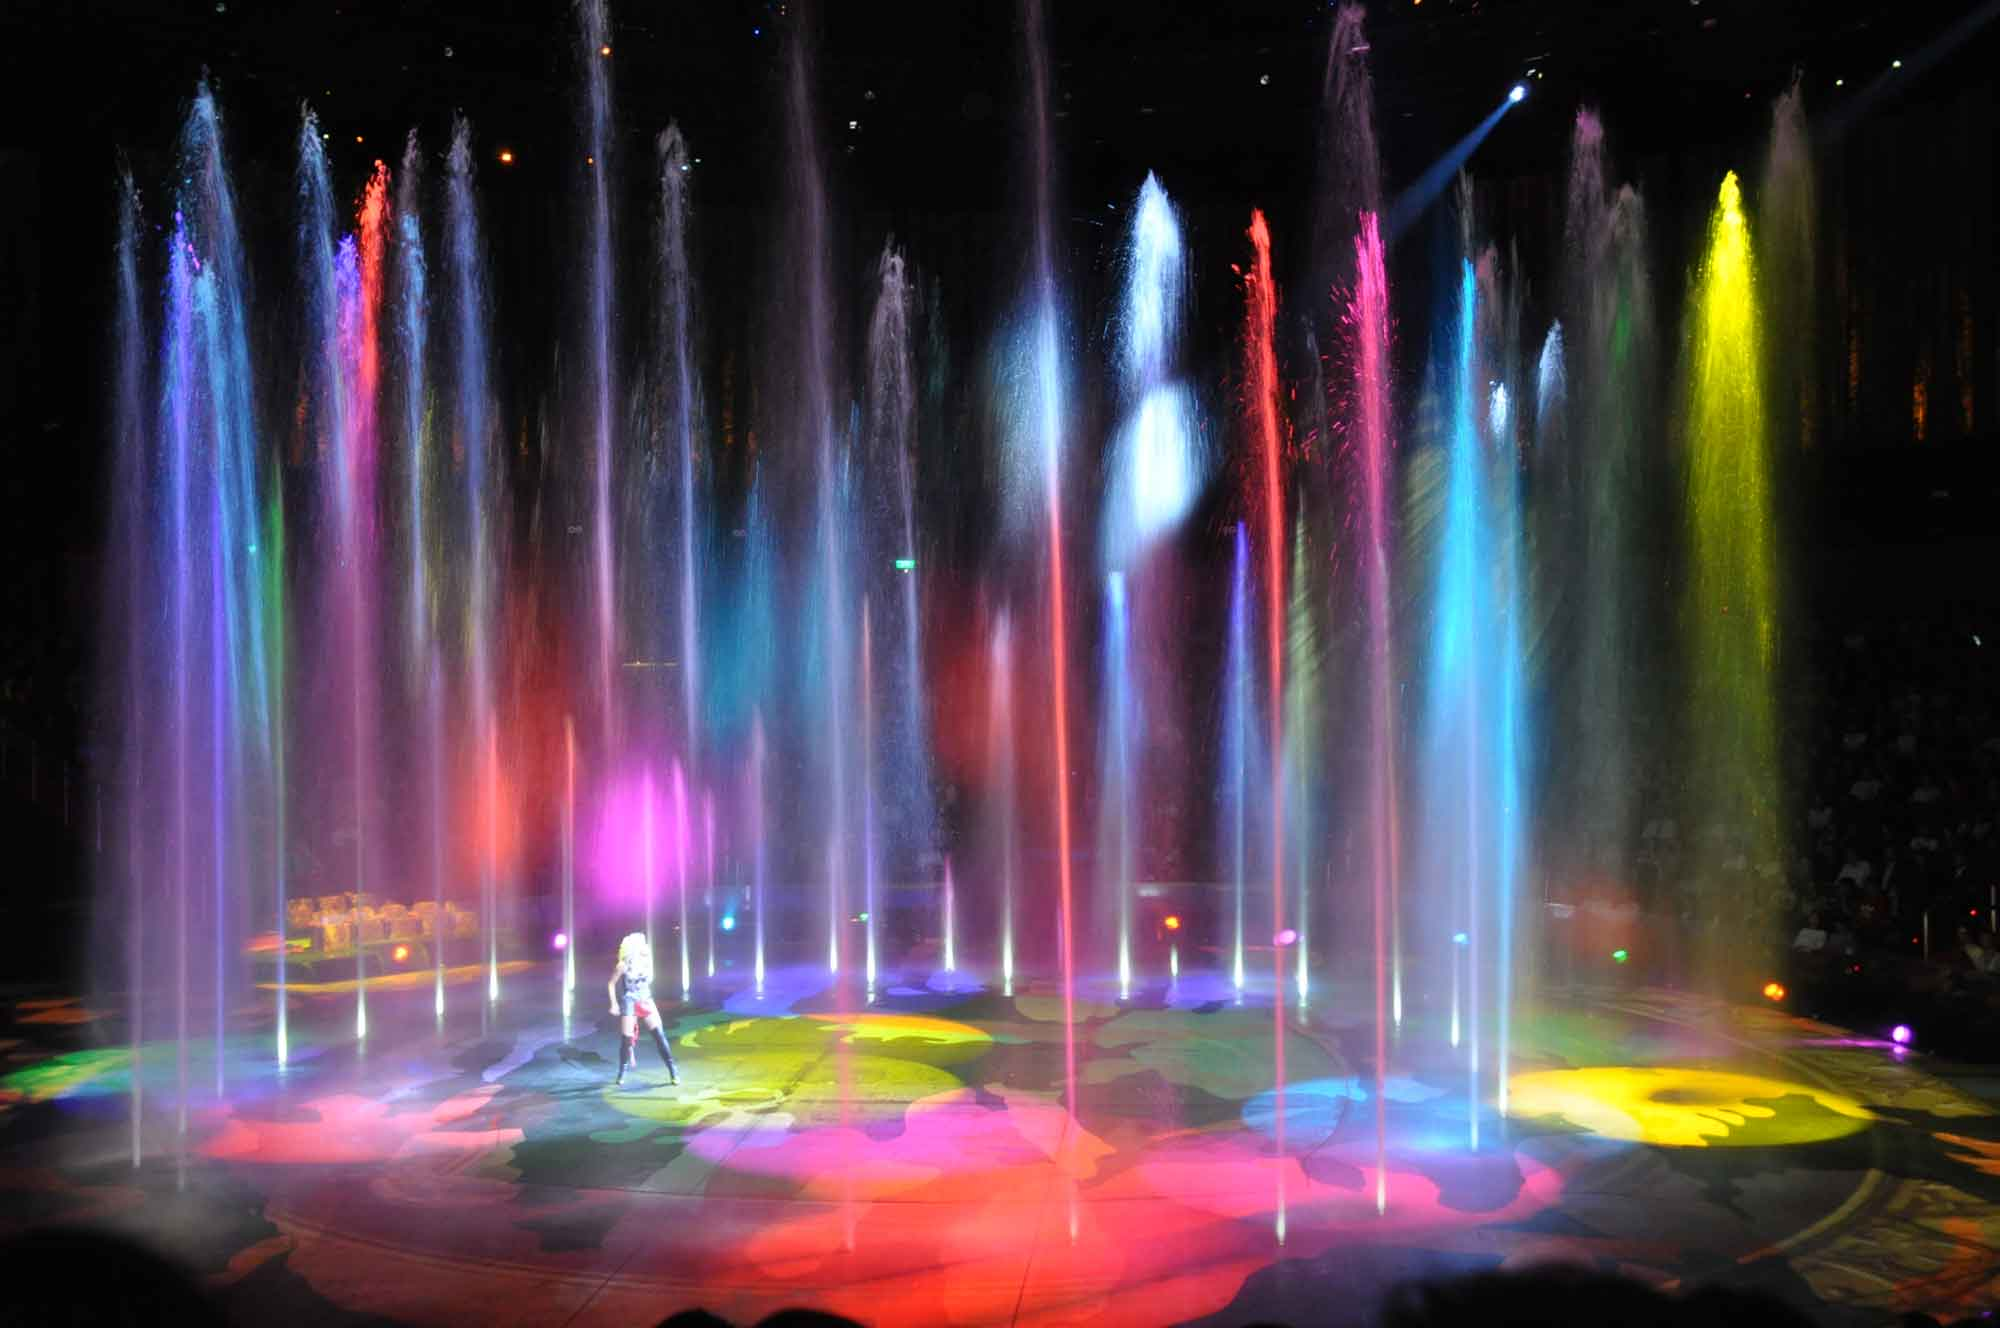 A lady performing solo in the middle of colorful water fountains